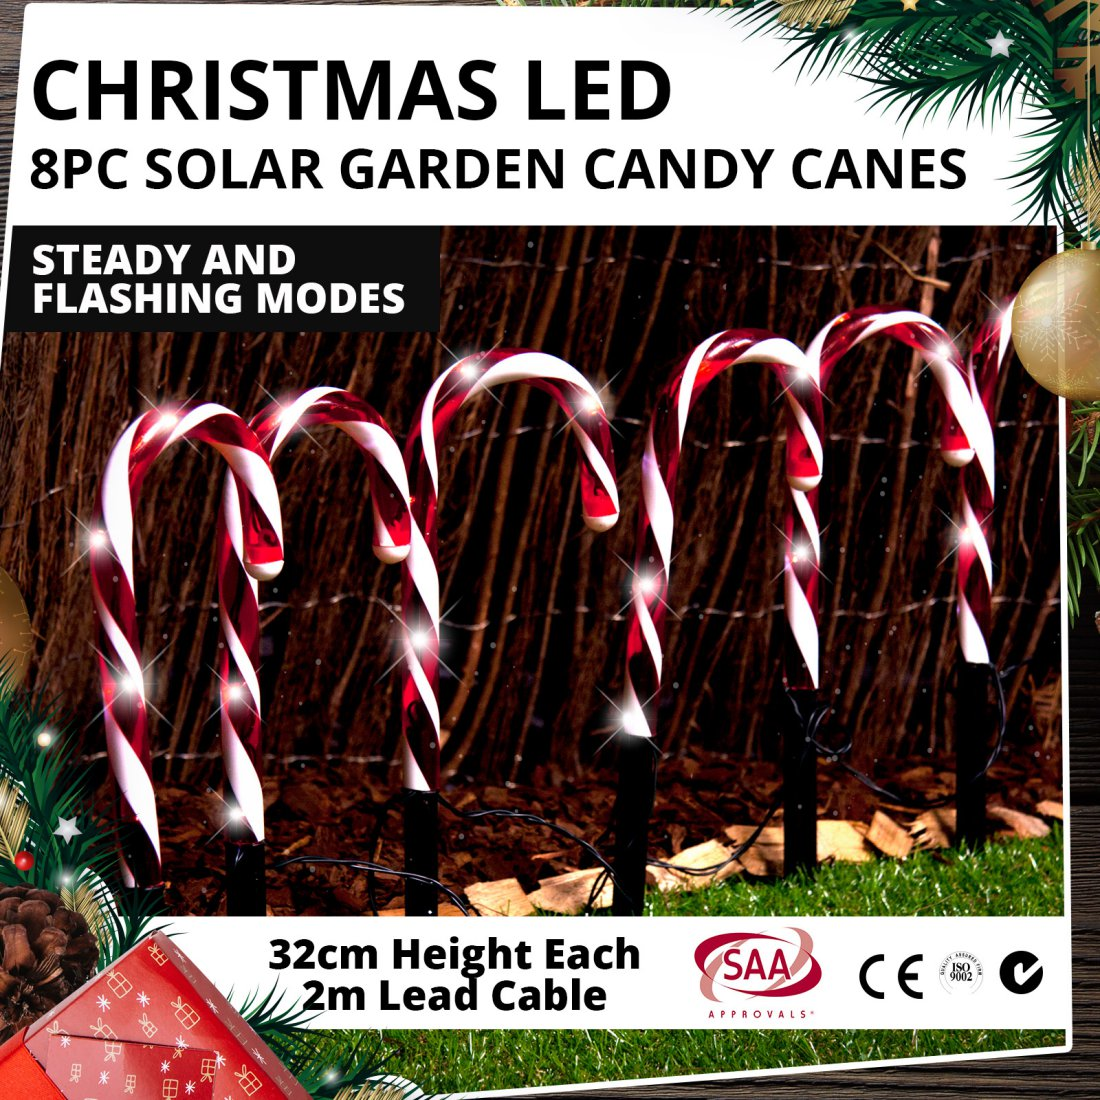 Christmas LED 8pc Solar Garden Candy Canes